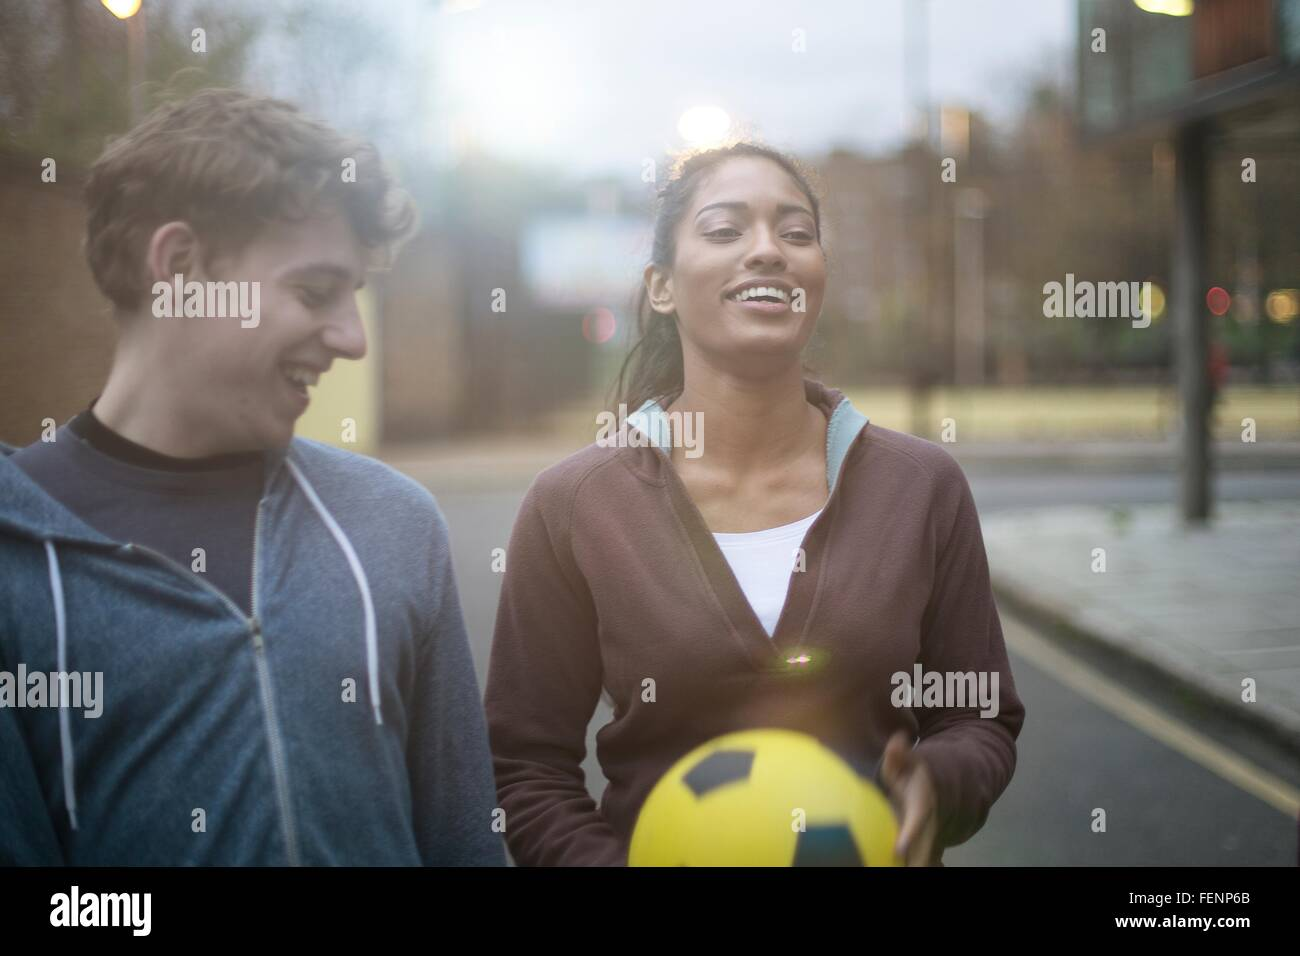 Young man and woman walking in street, holding football - Stock Image